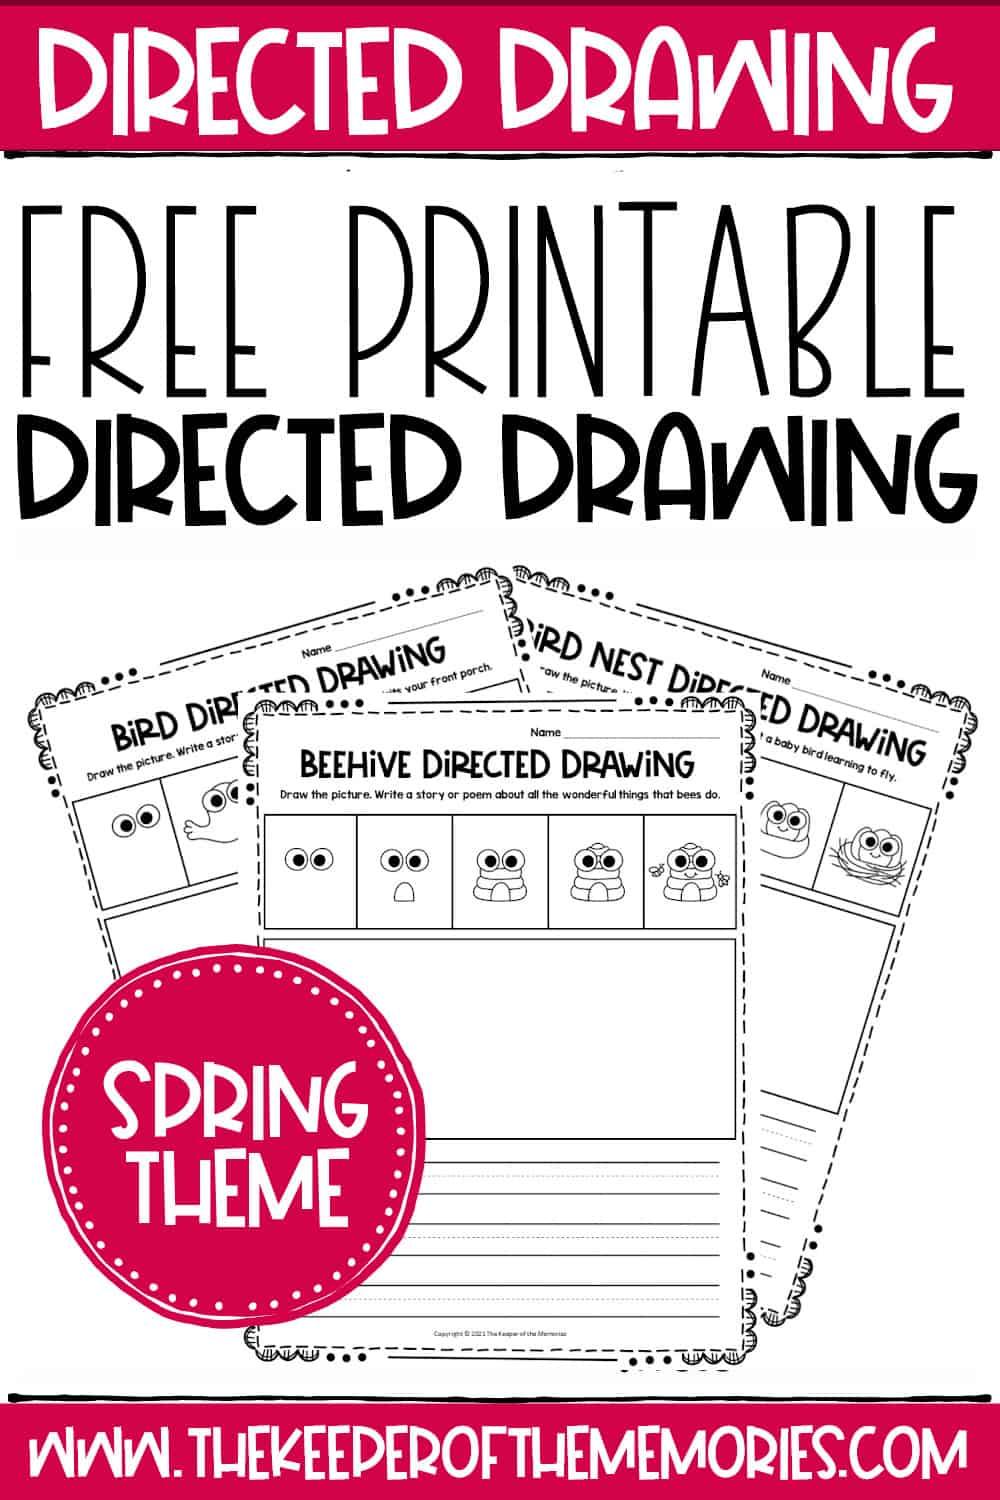 Free Printable Spring Directed Drawing